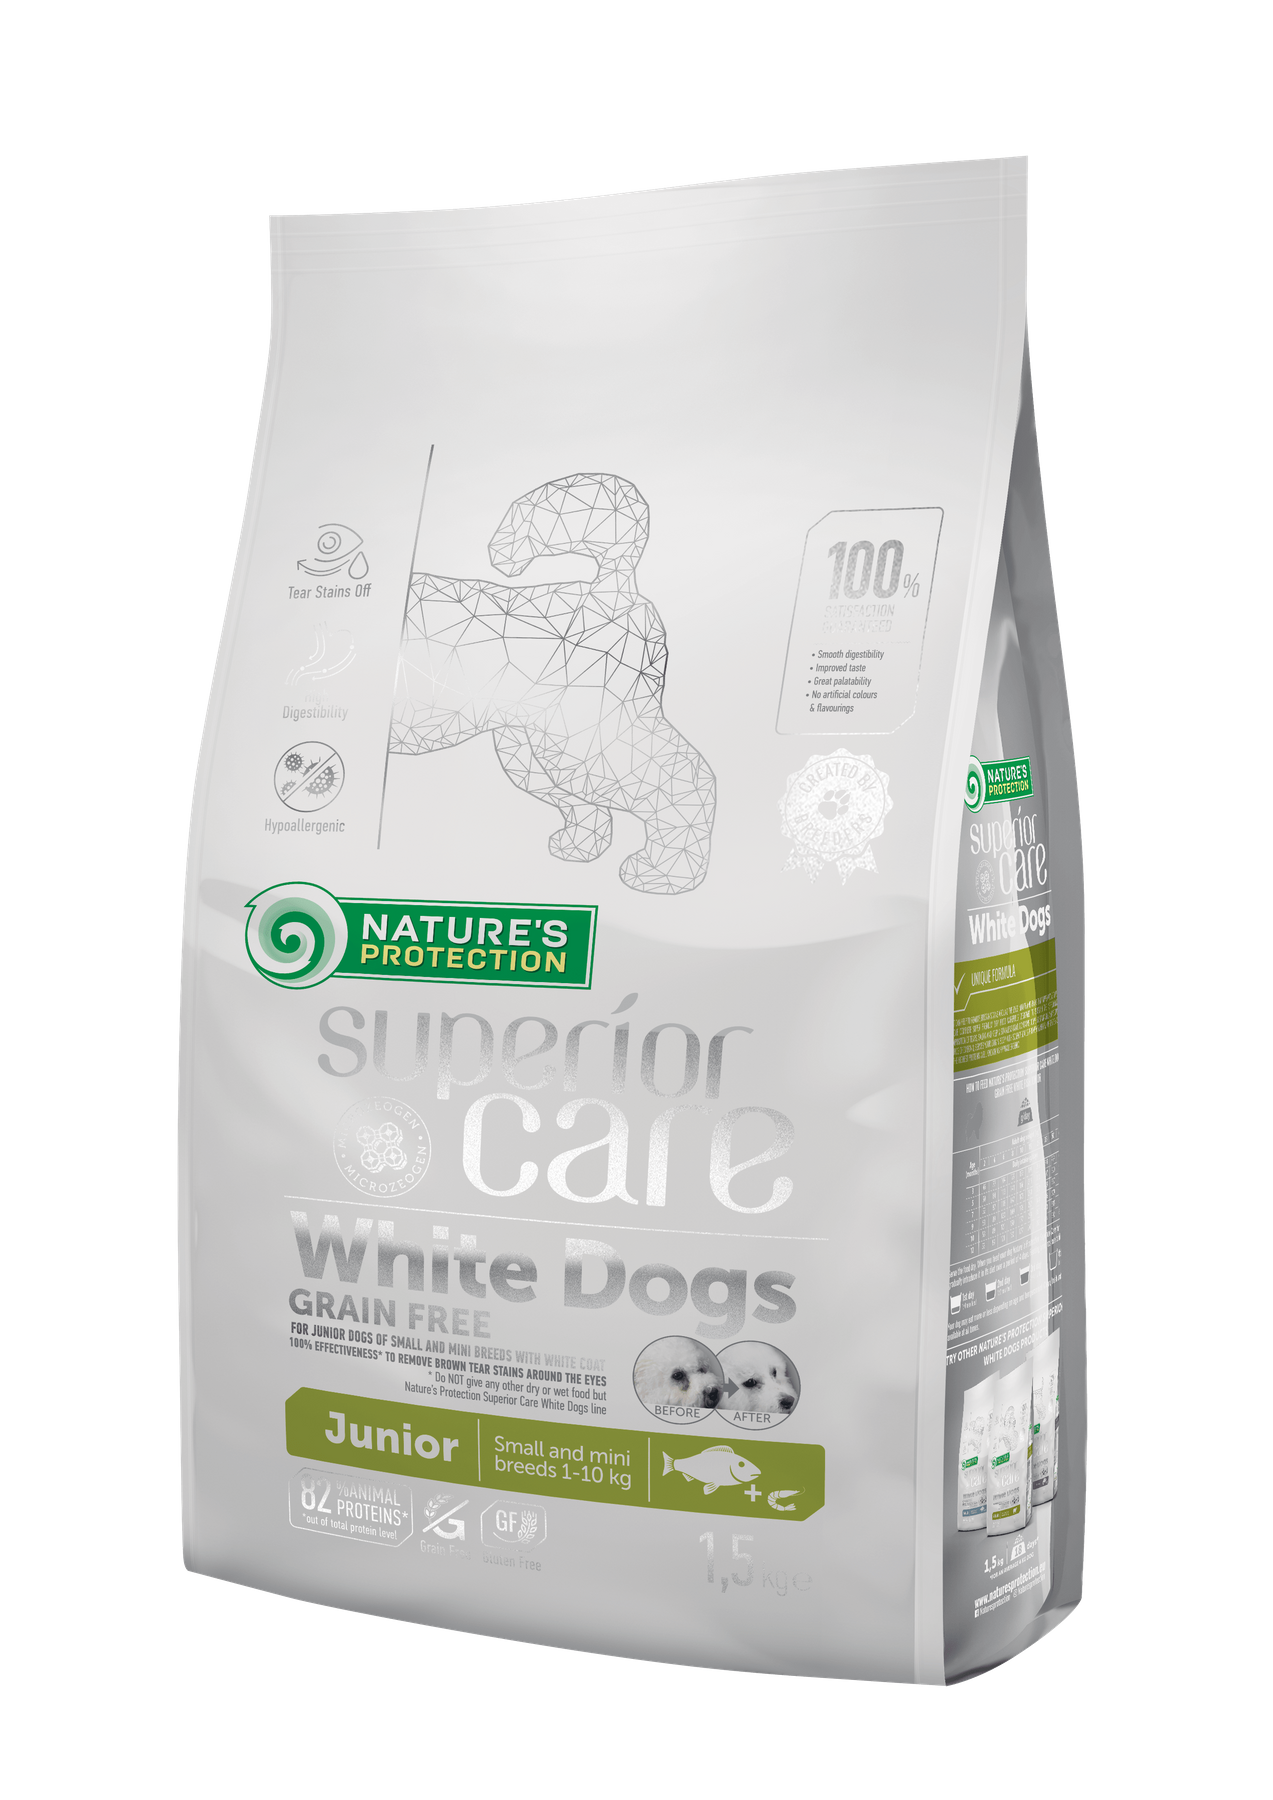 NP Superior Care White Dogs Grain Free Junior Small and Mini Breeds 17 кг